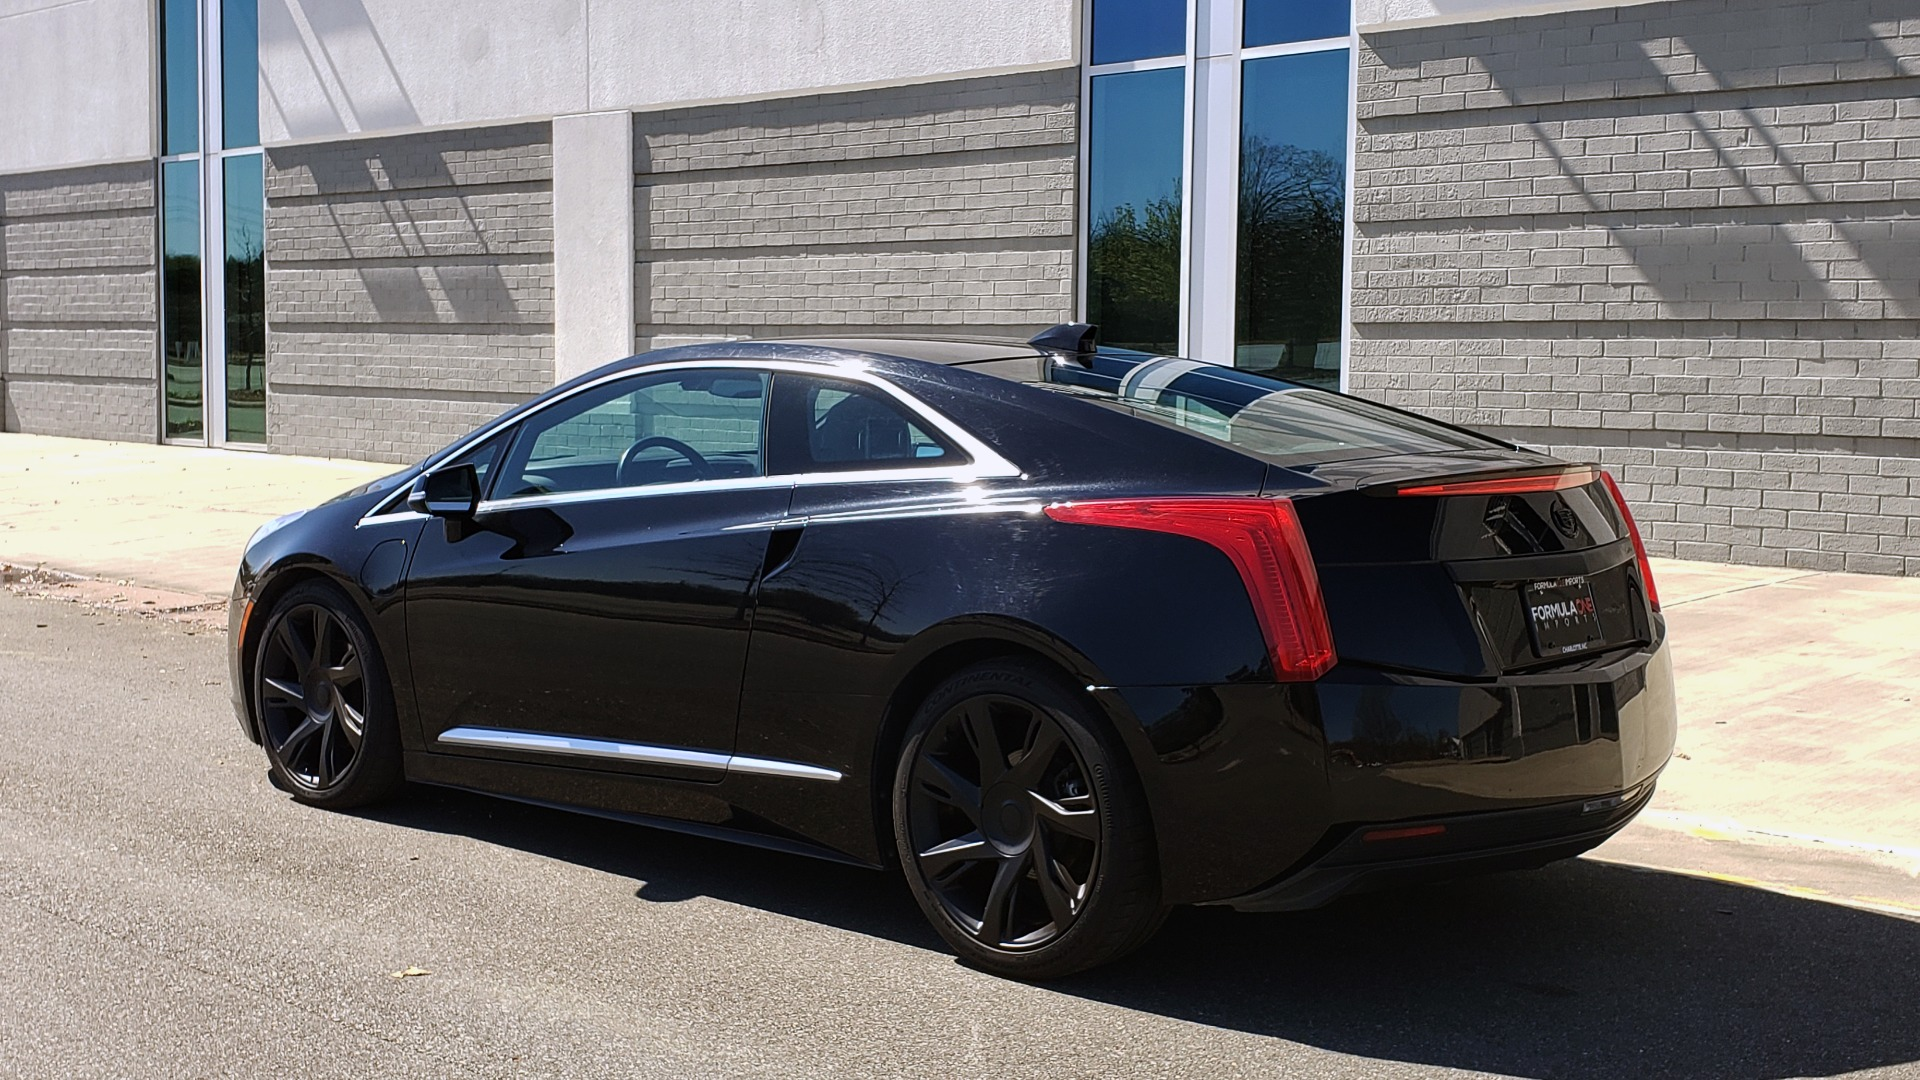 Used 2014 Cadillac ELR 2DR COUPE / HYBRID / NAV / BOSE / HEATED SEATS / REARVIEW for sale $19,995 at Formula Imports in Charlotte NC 28227 4